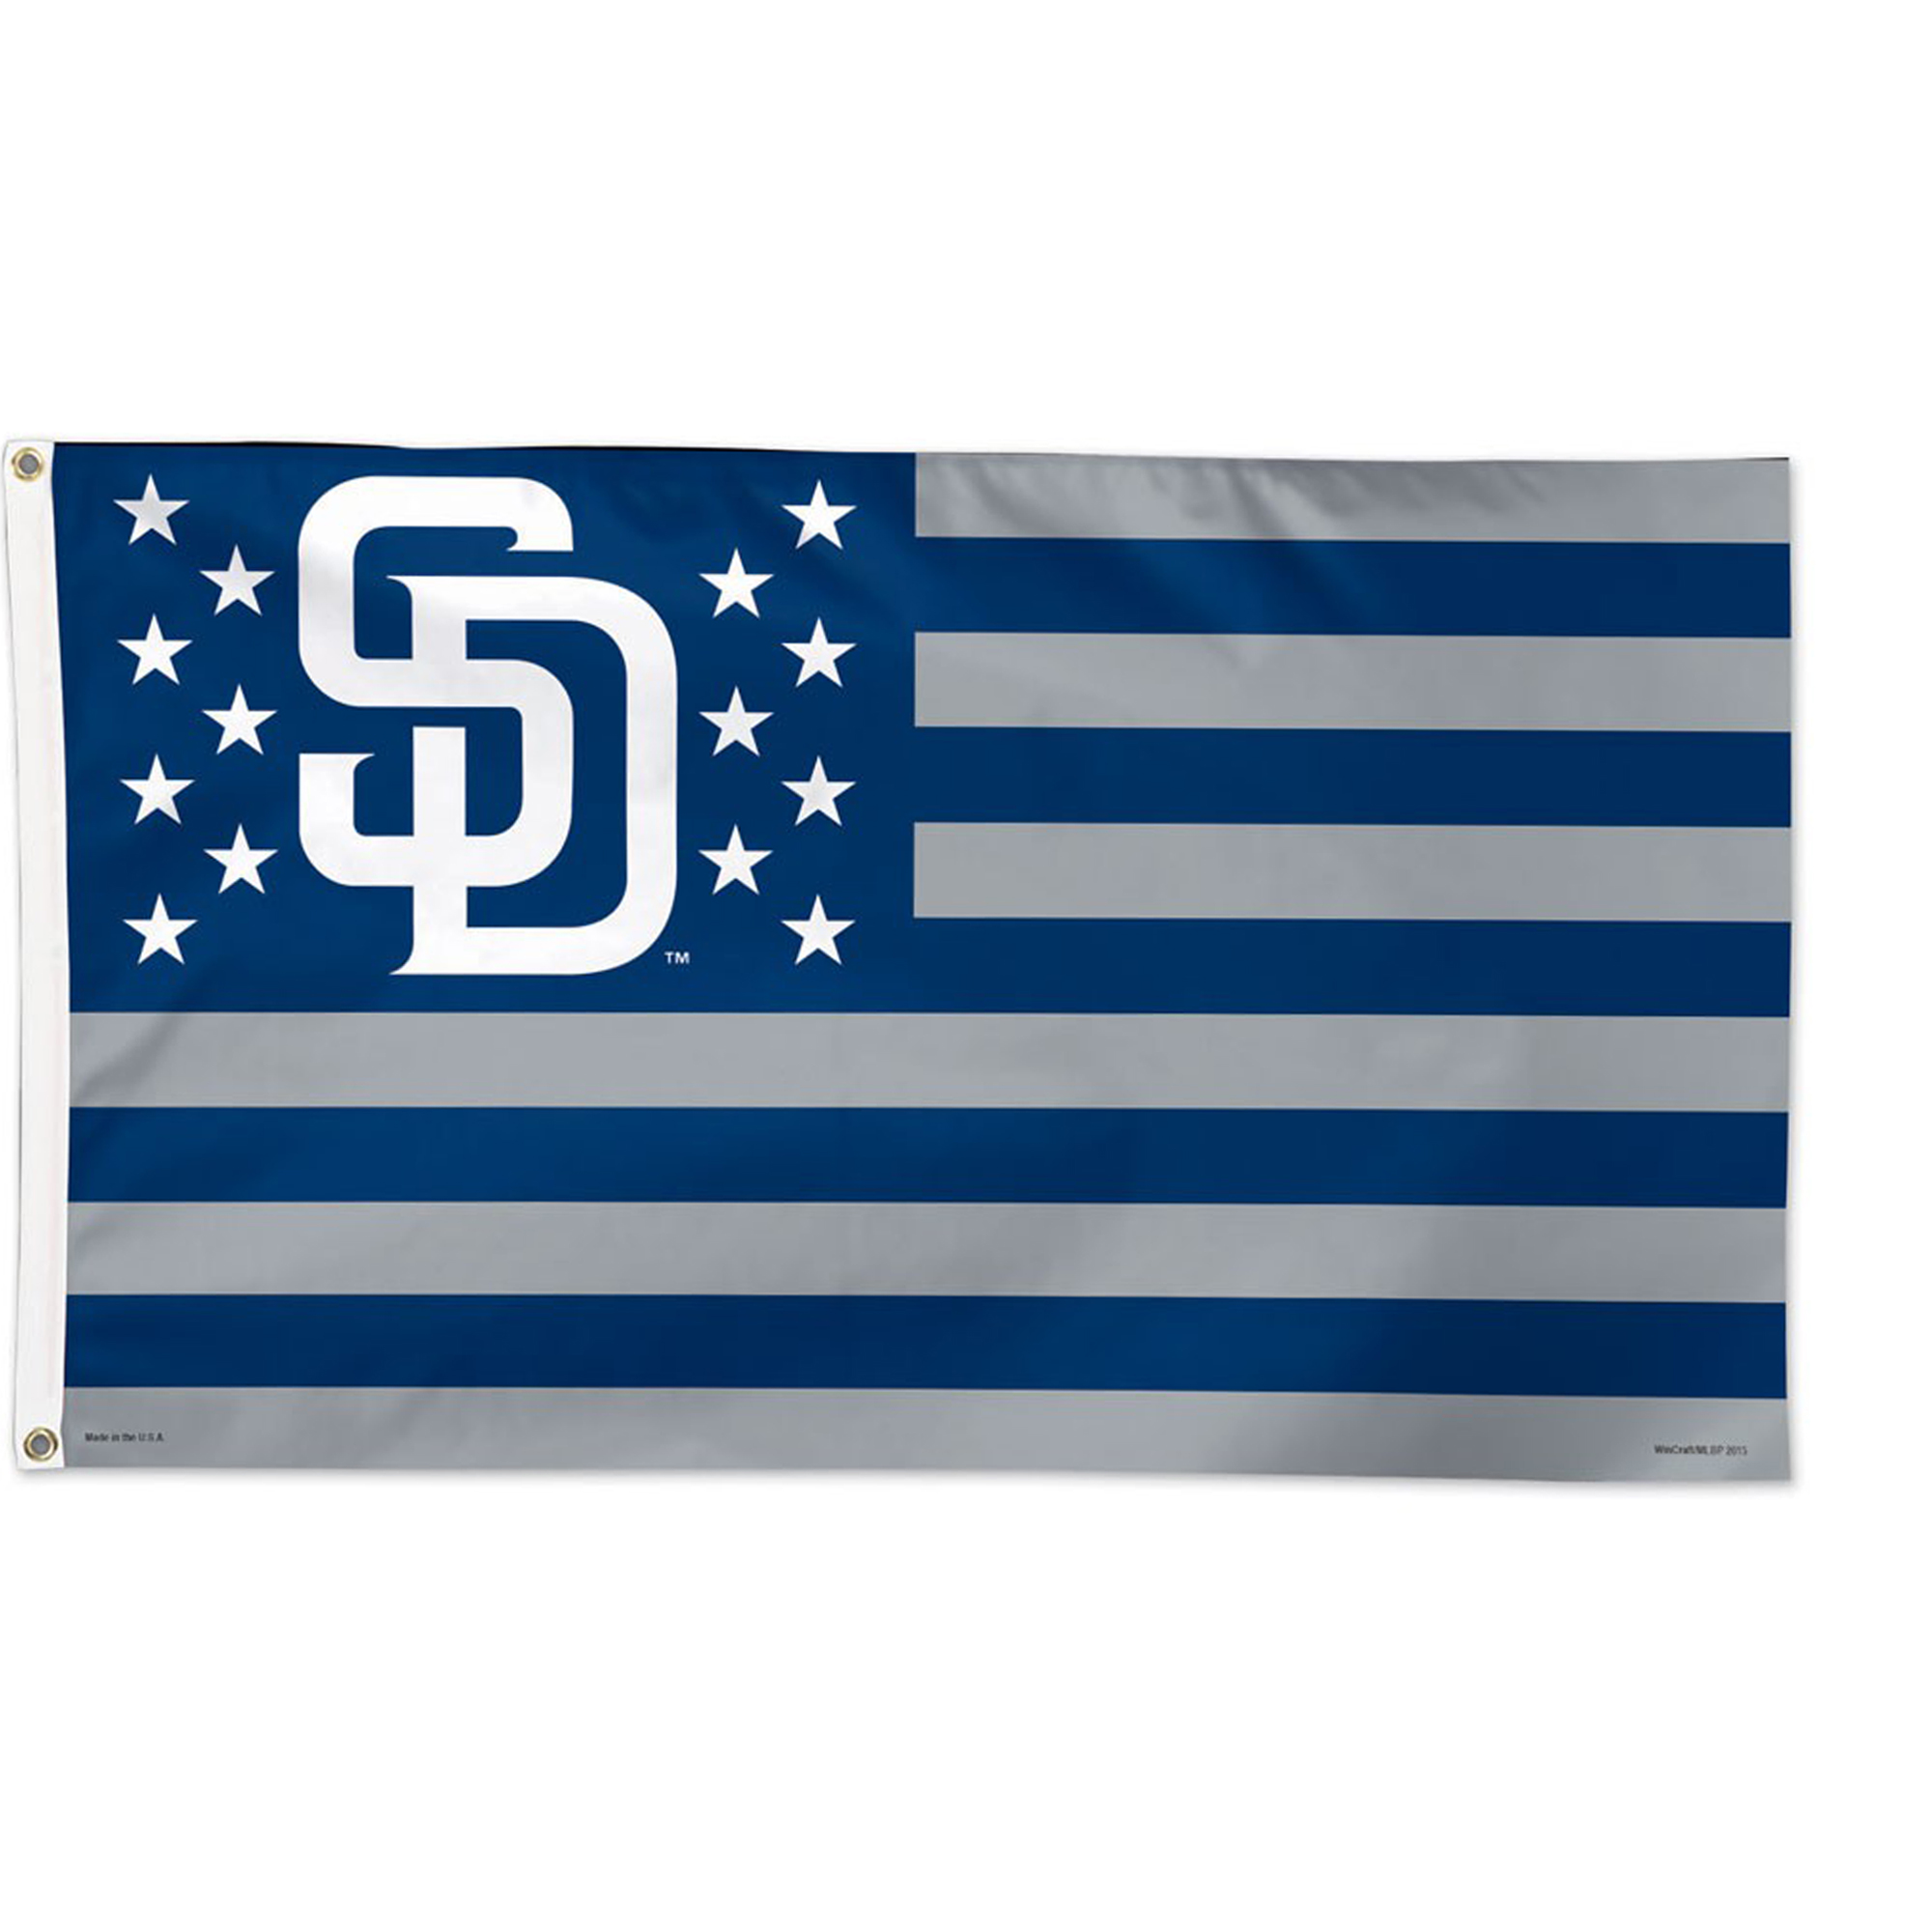 San Diego Padres WinCraft 3' x 5' Deluxe One-Sided Flag - No Size